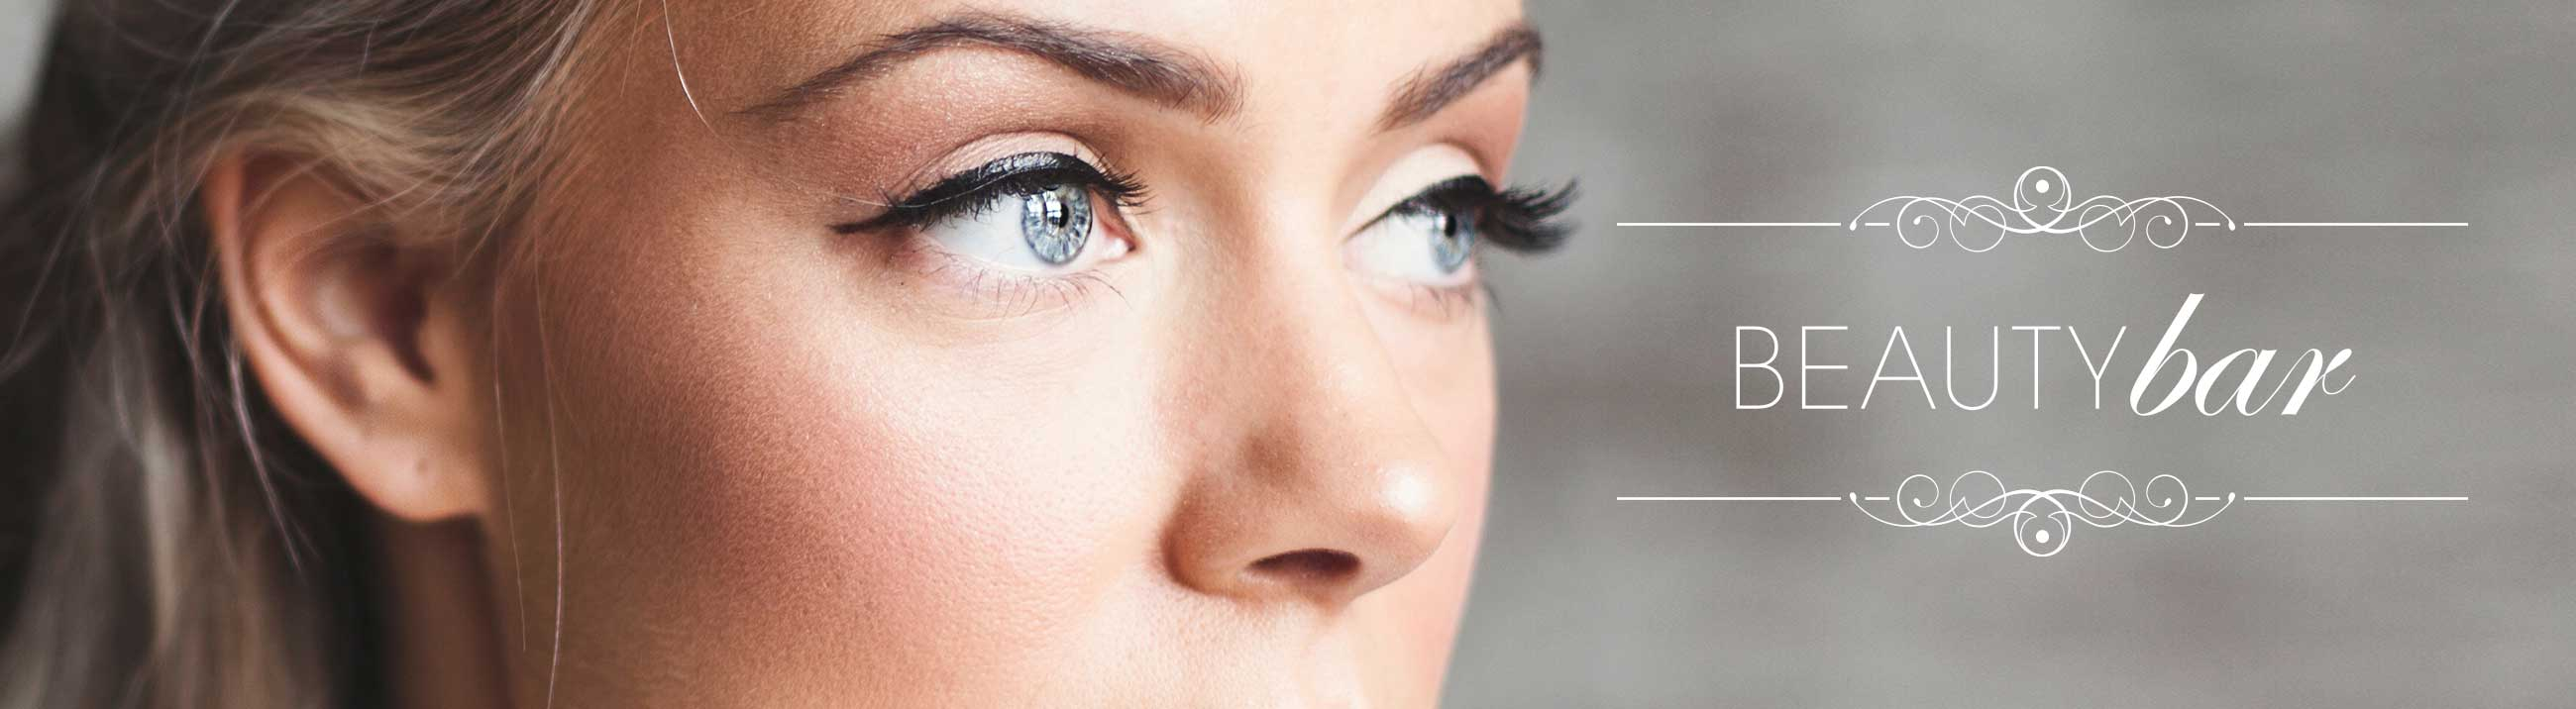 Eyelash Extensions Voila The Best Hair Salon Spa In Kitchener Waterloo